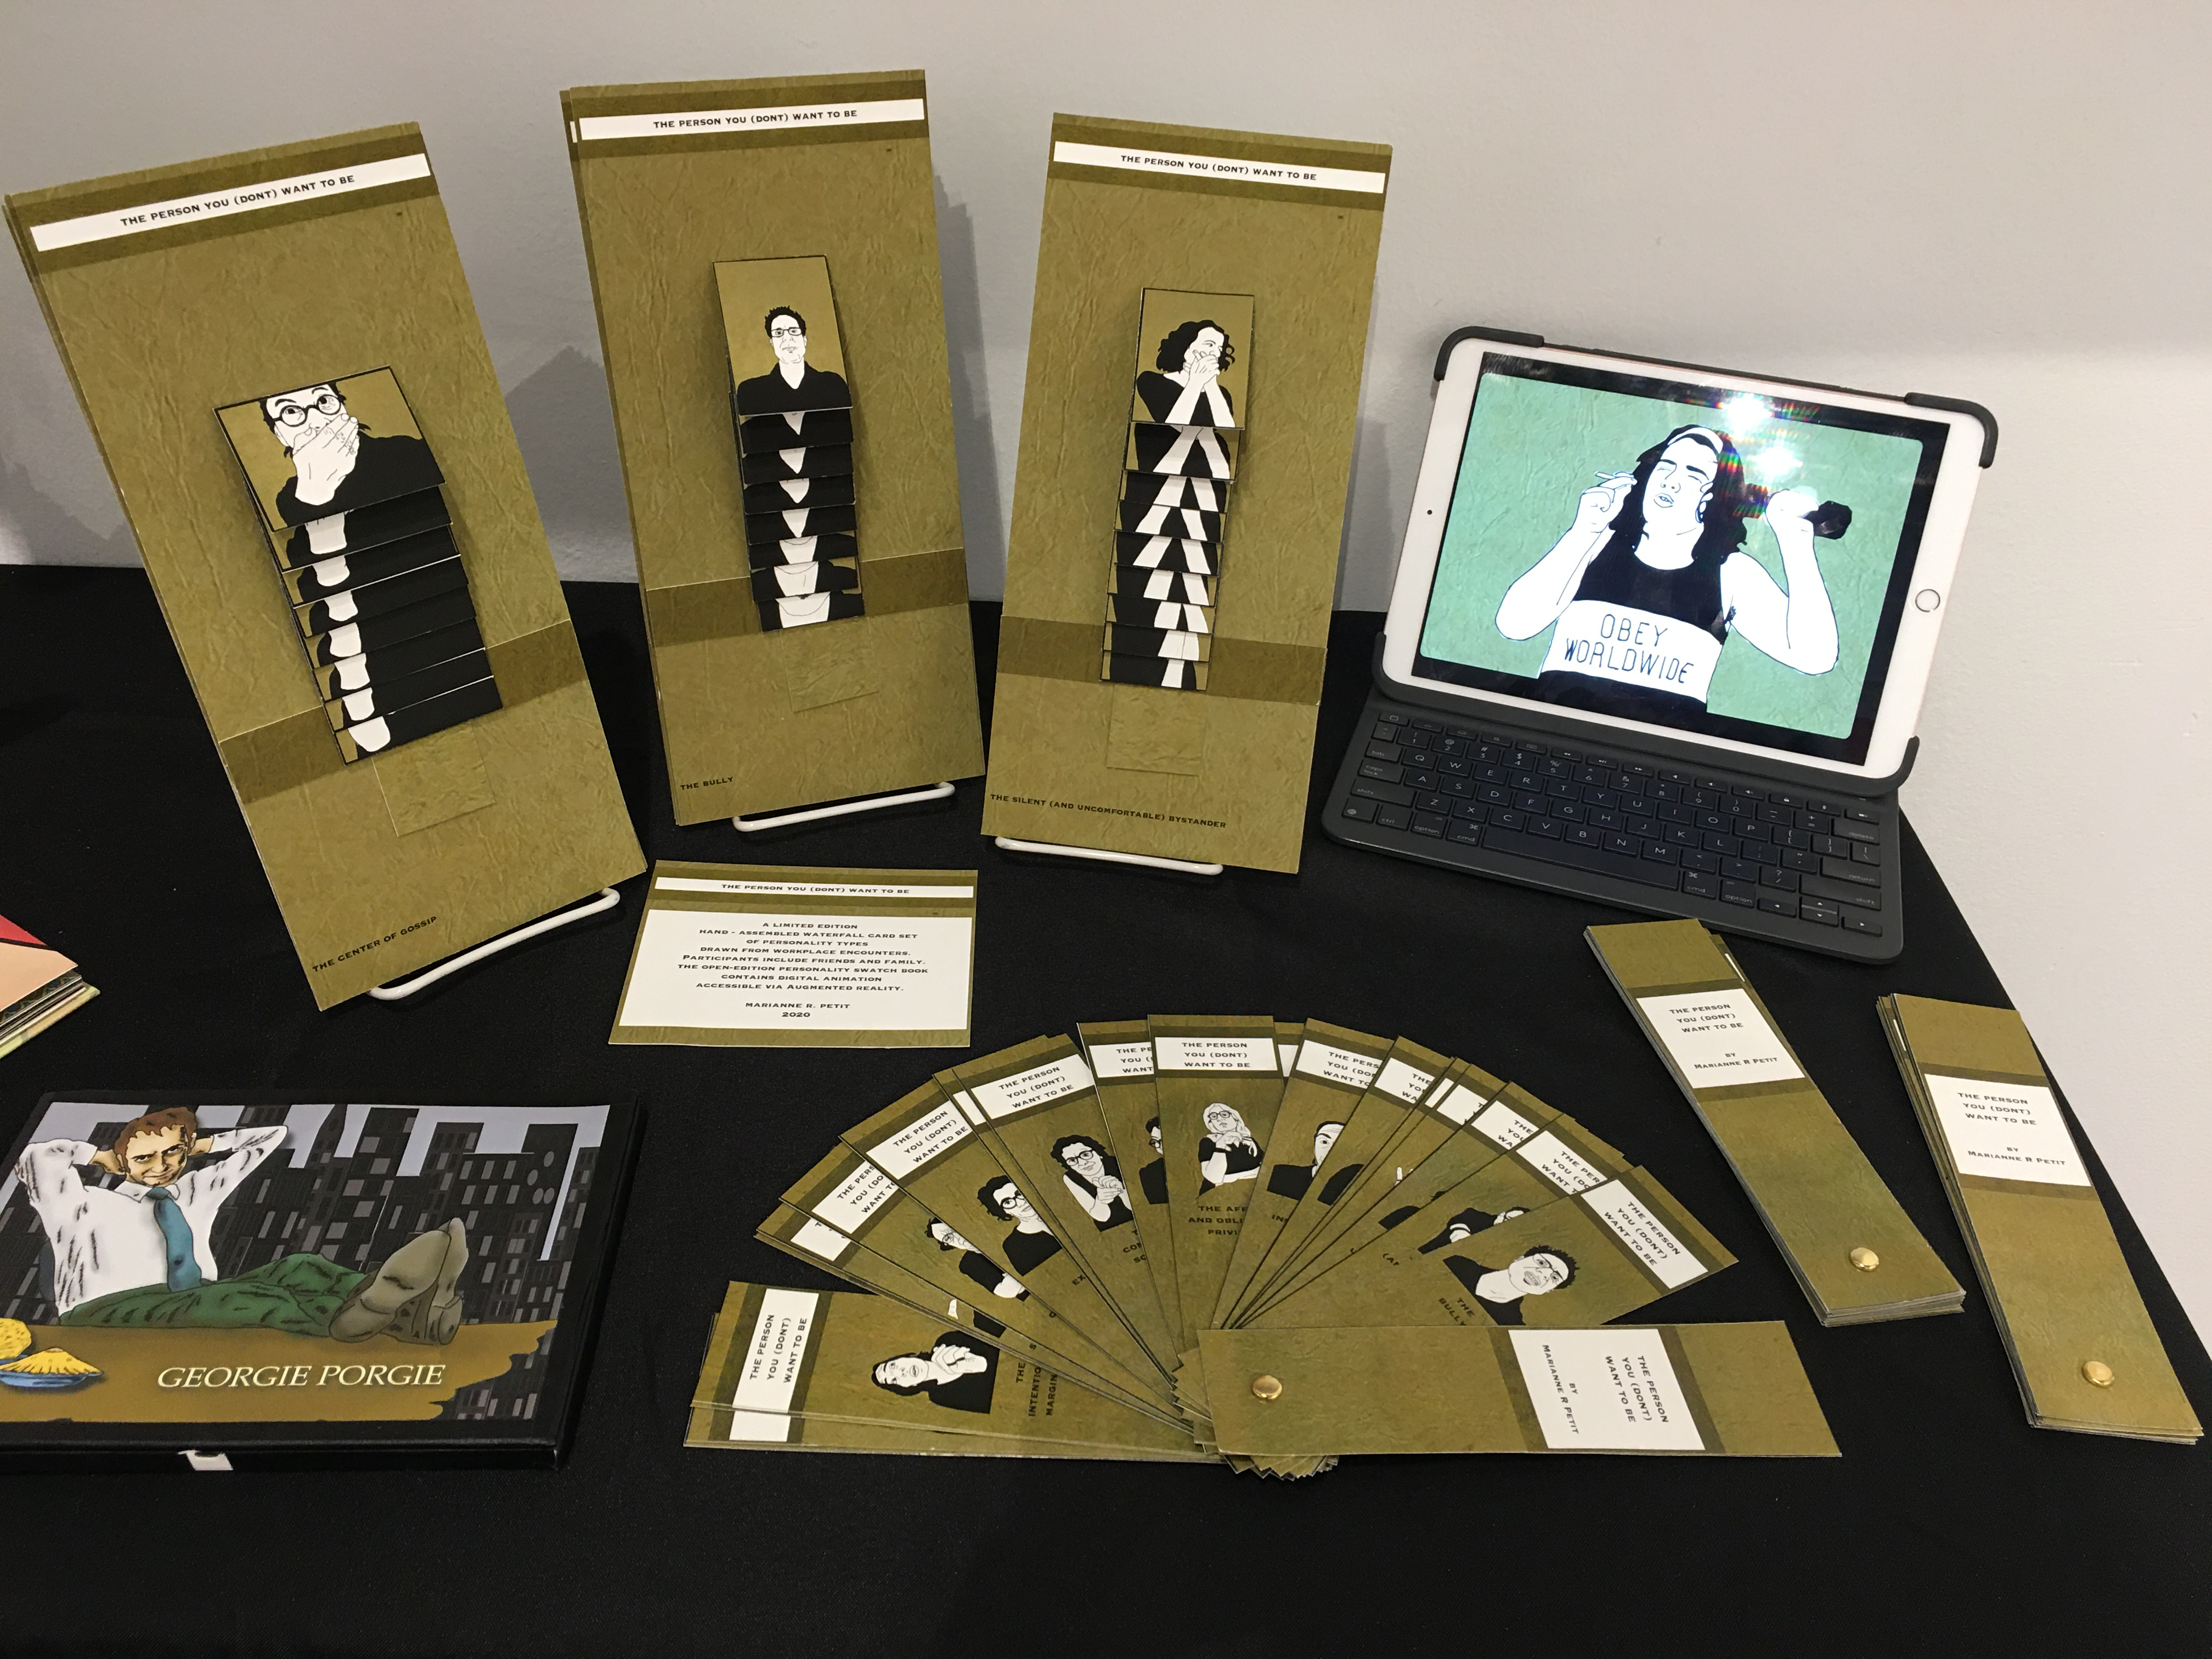 Image of table with several waterfall cards, an iPad playing animations, and several swatch books.